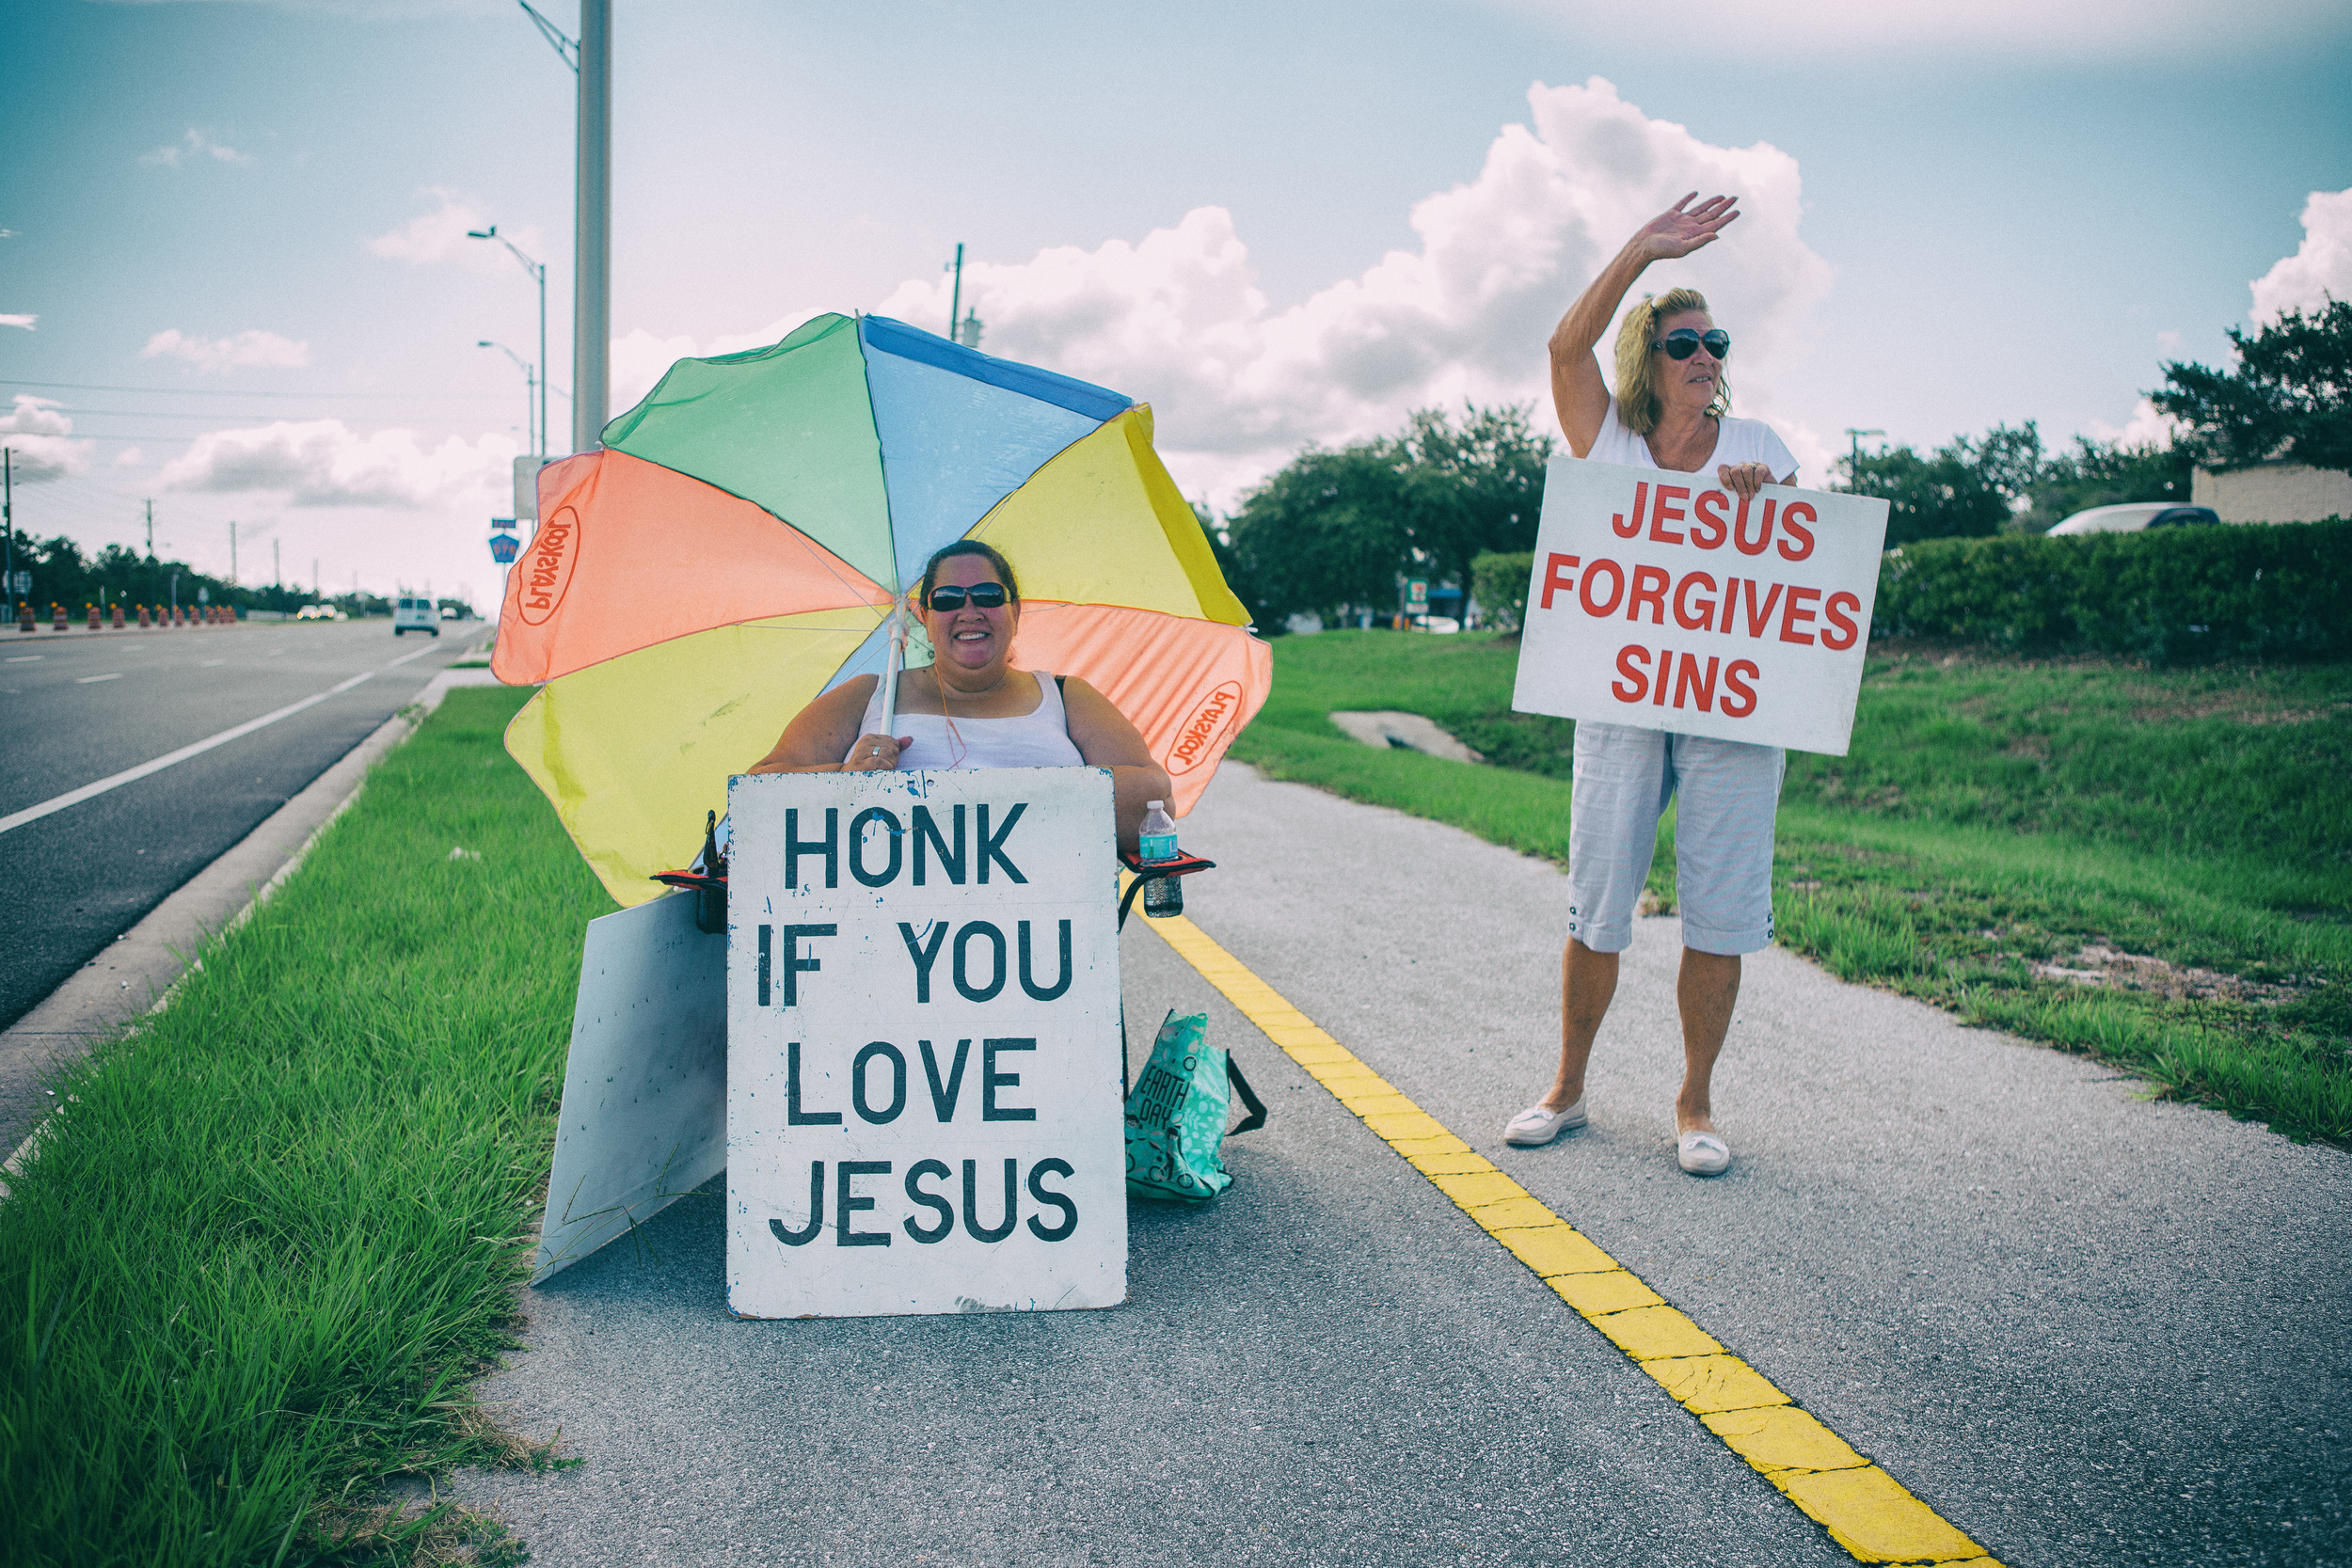 I passed this woman on Hwy 19, just outside of Clearwater, FL, then made a U-turn to grab the shot. She was honored and so was I. Everything about this shot, her smile, the leading lines, typography, colorful umbrella, and friend framed perfectly in the clouds put this one on the short list.